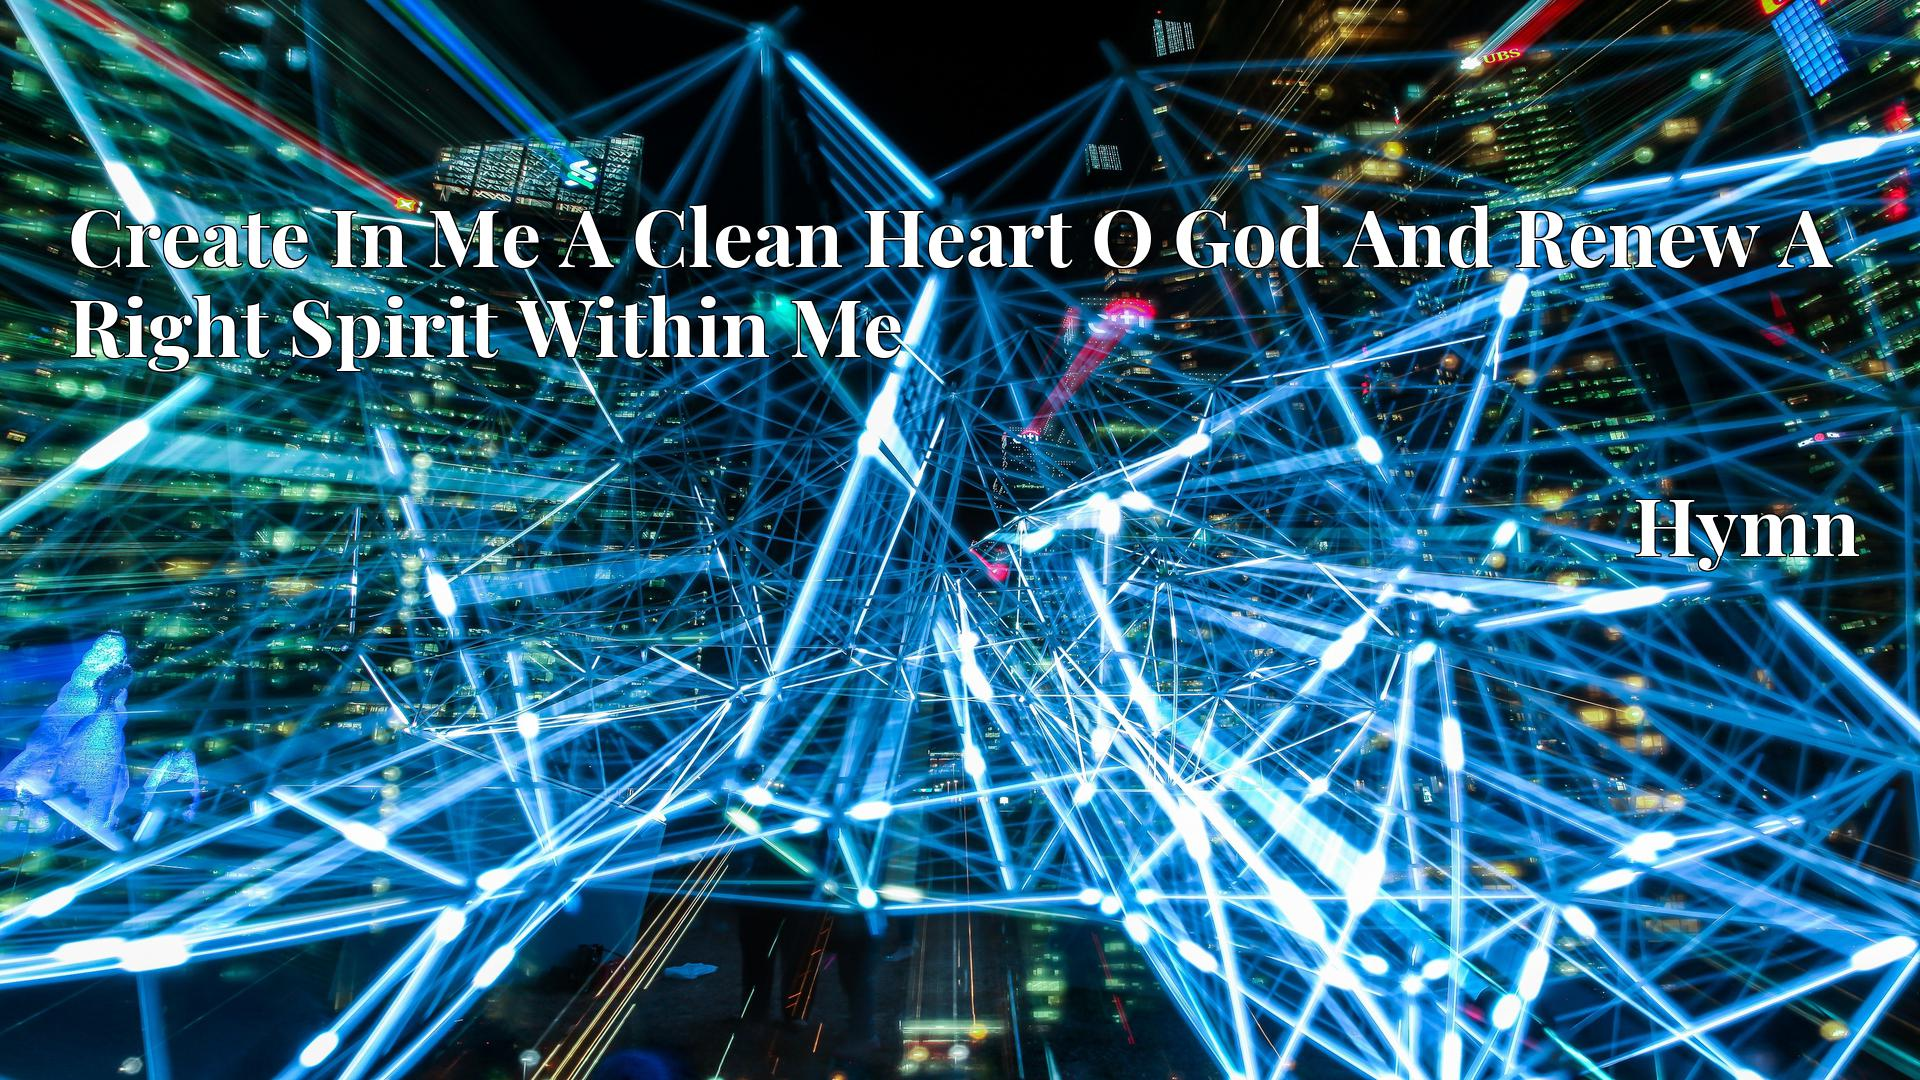 Create In Me A Clean Heart O God And Renew A Right Spirit Within Me - Hymn